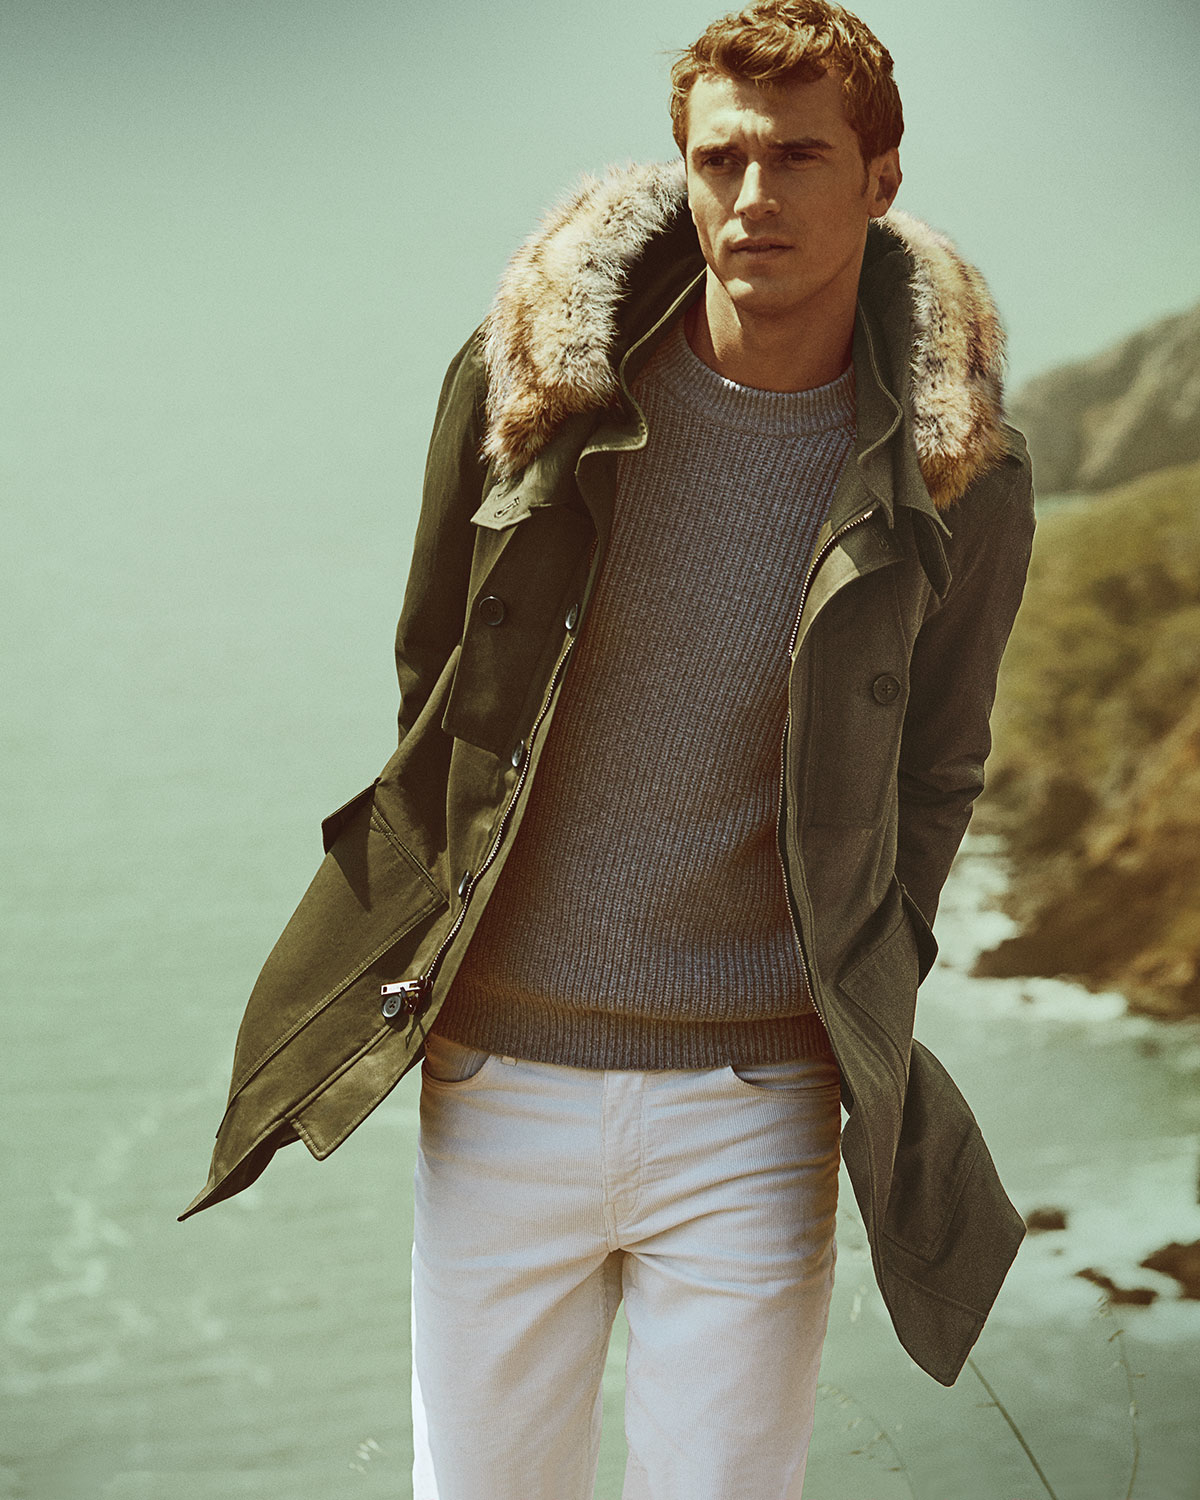 Mens jacket lined with fur - Gallery